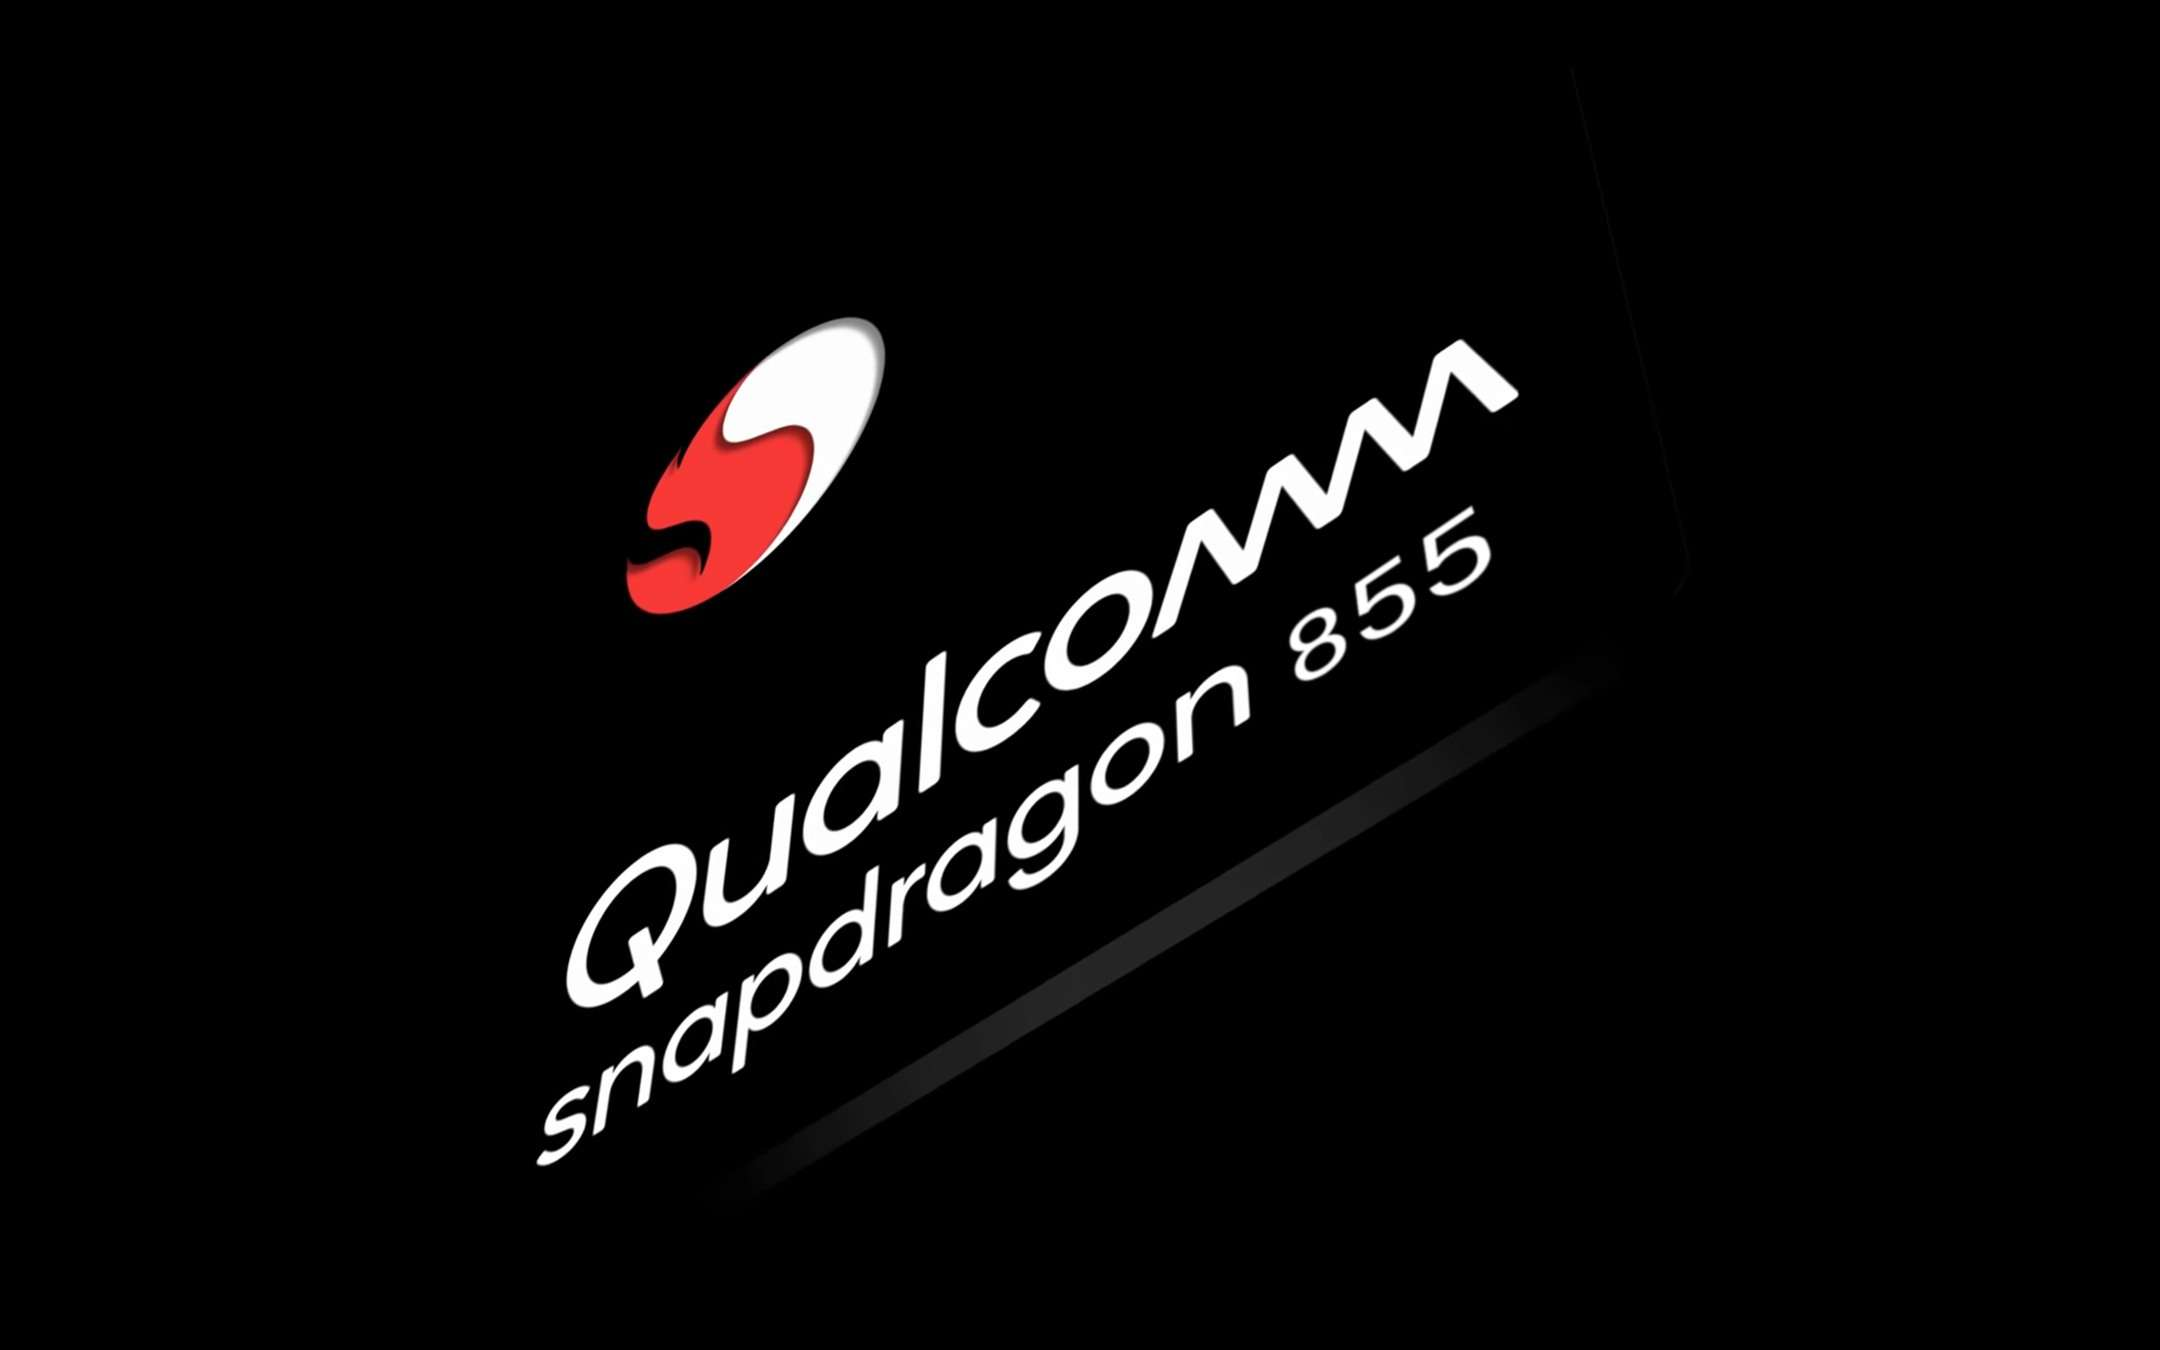 Qualcomm Snapdragon 855 ufficiale: fra 5G ed AI